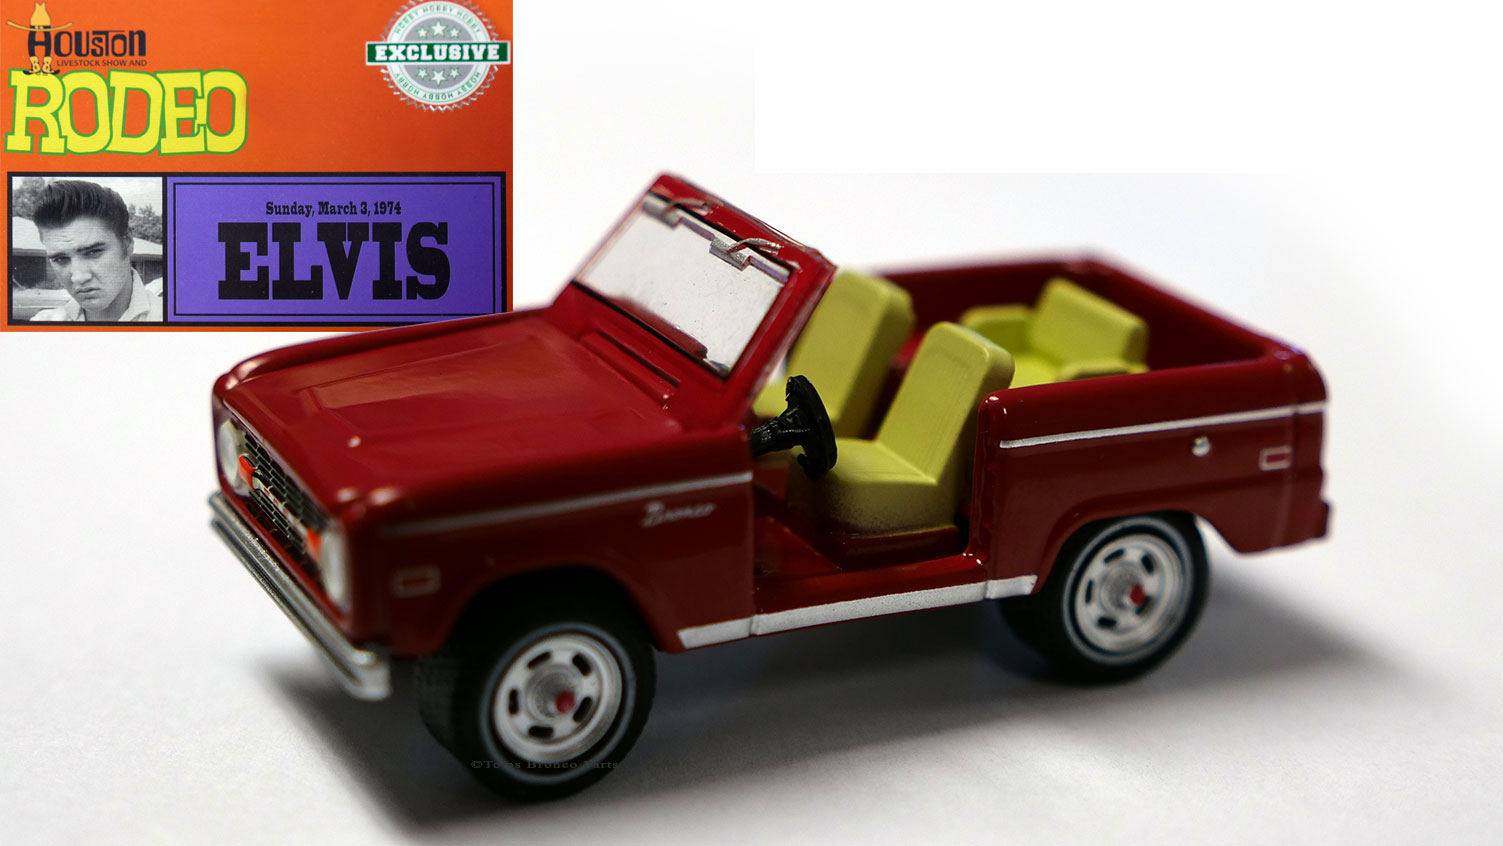 1974 Ford Bronco - Elvis Presley, Live at Houston Livestock Show & Rodeo, 1:64 Die Cast